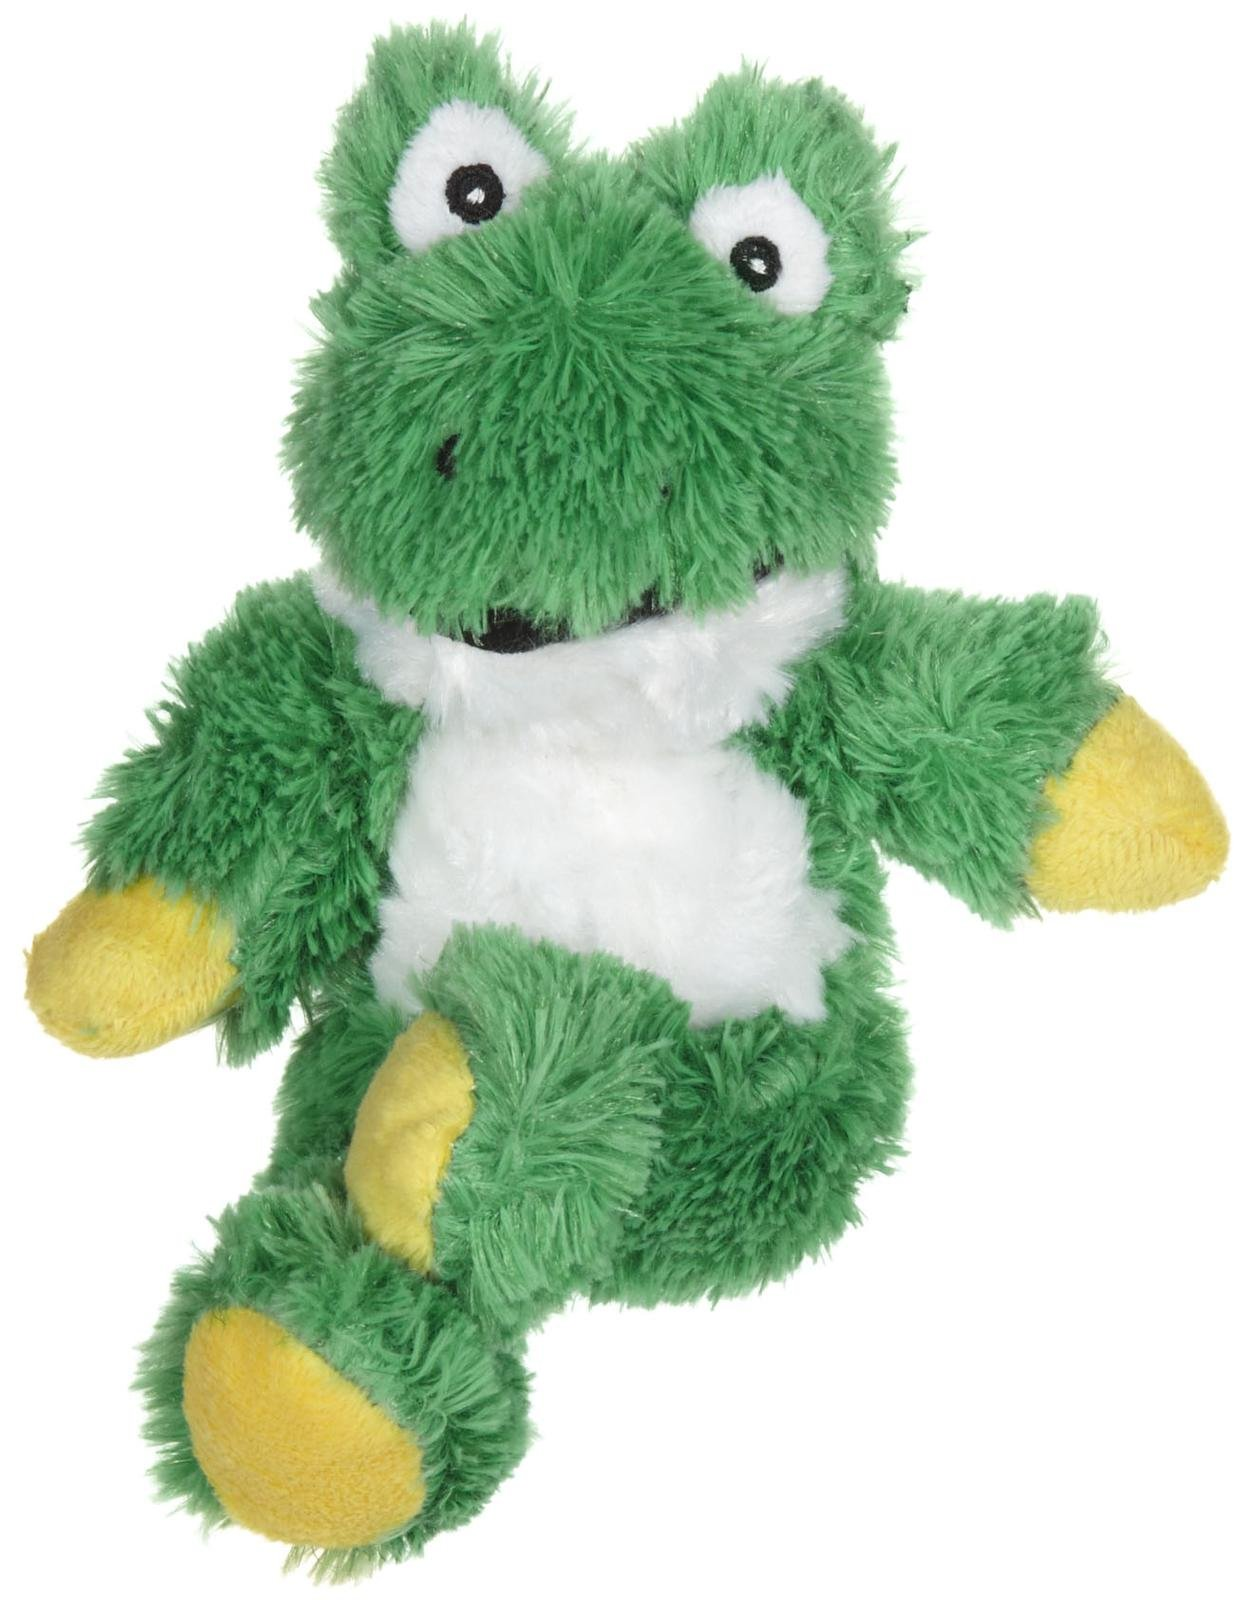 The Kong Company KONG Cross Knots Dog Toy SM/MD Frog